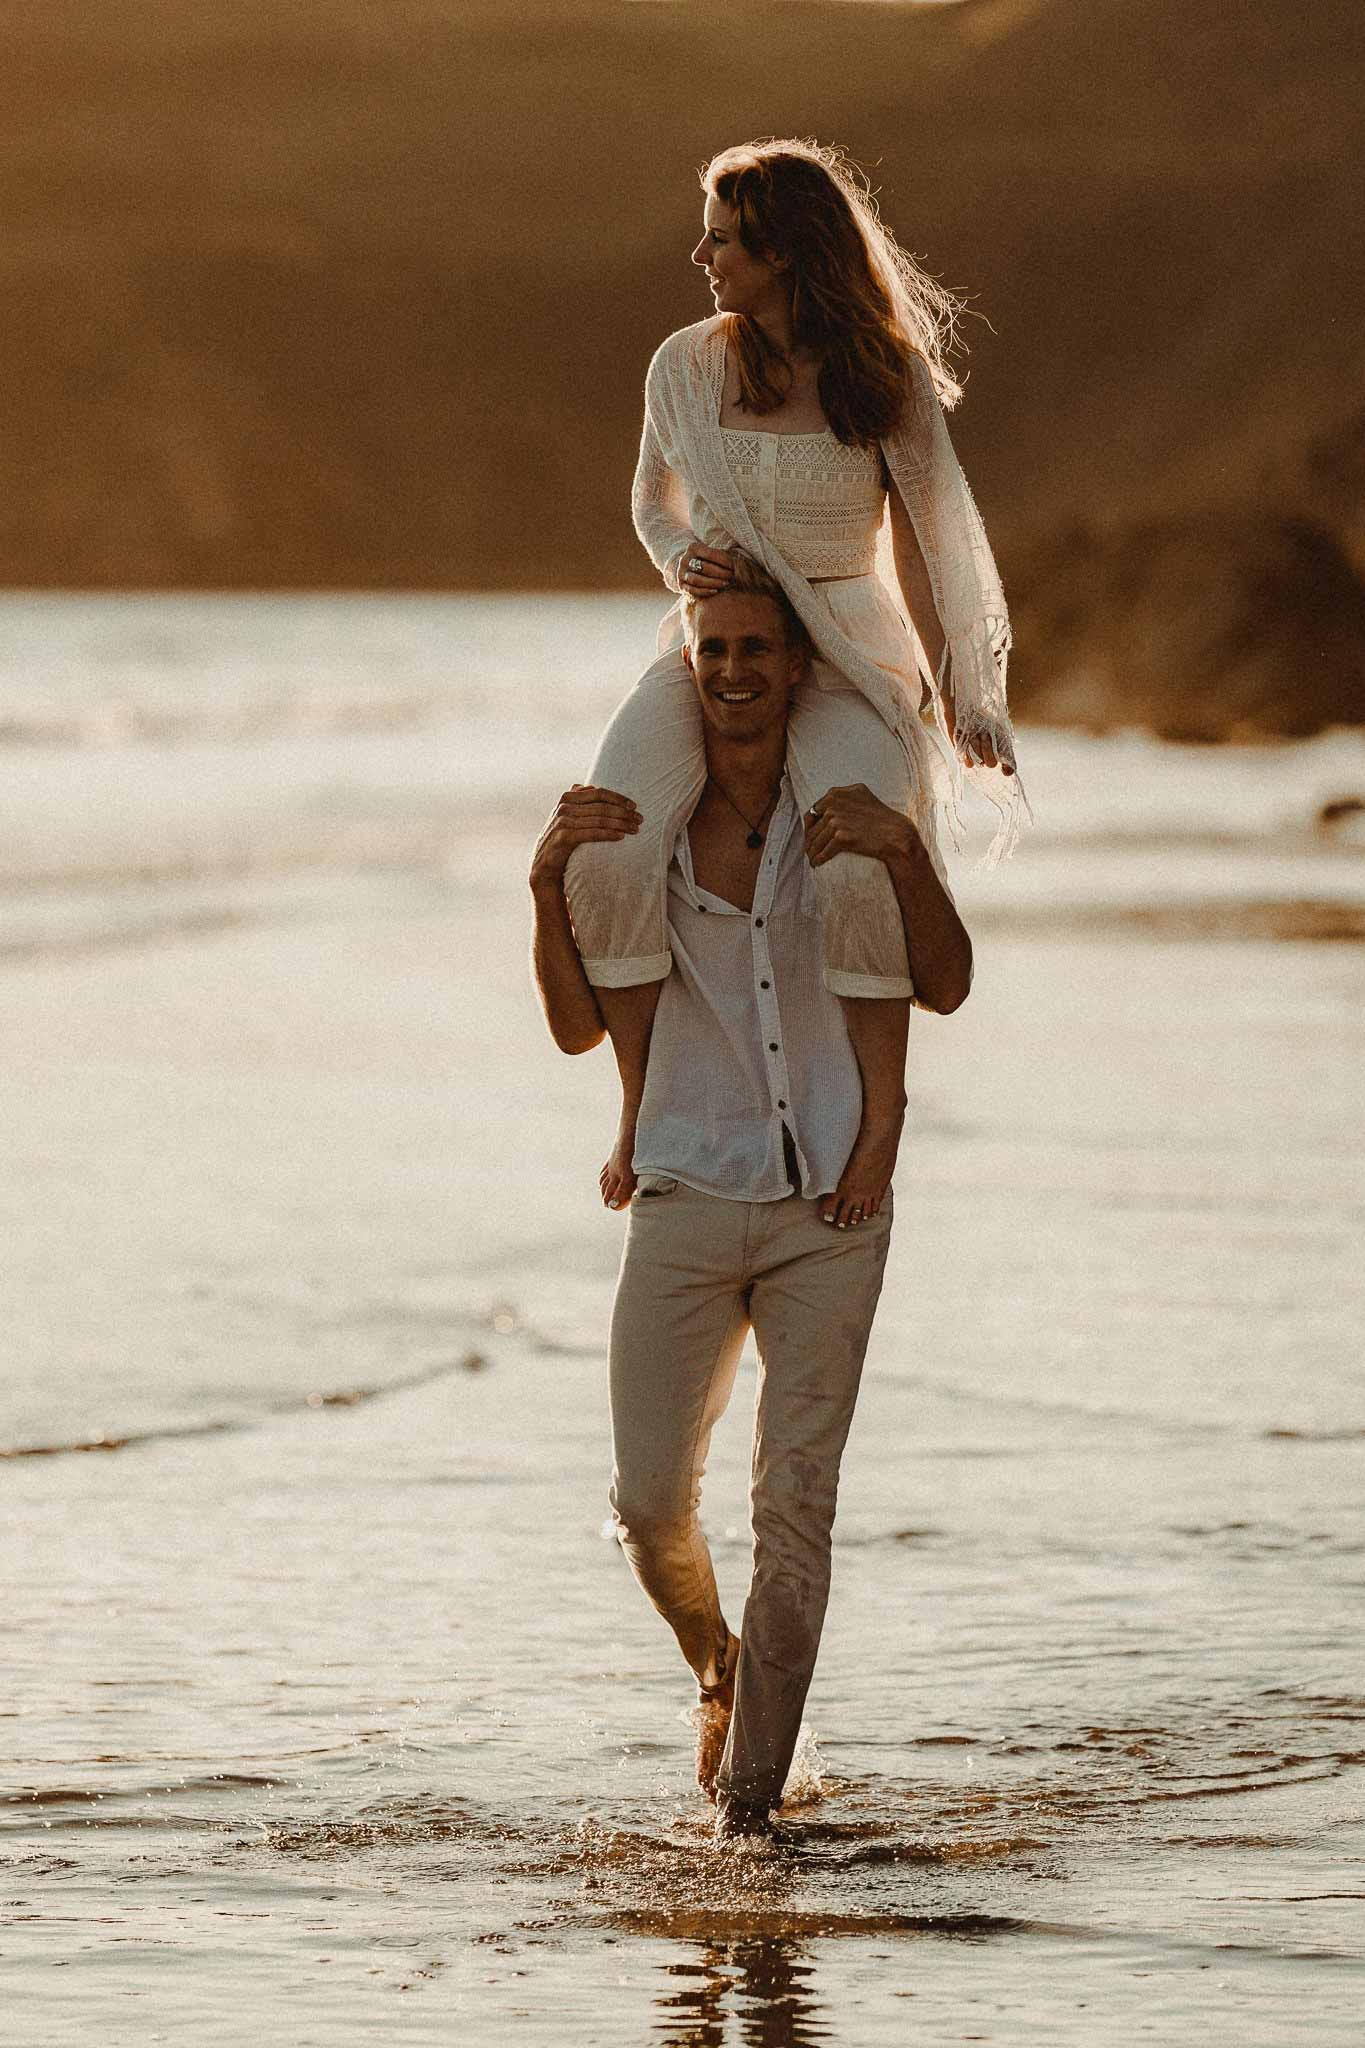 A man carries his partner on his shoulders across the beach